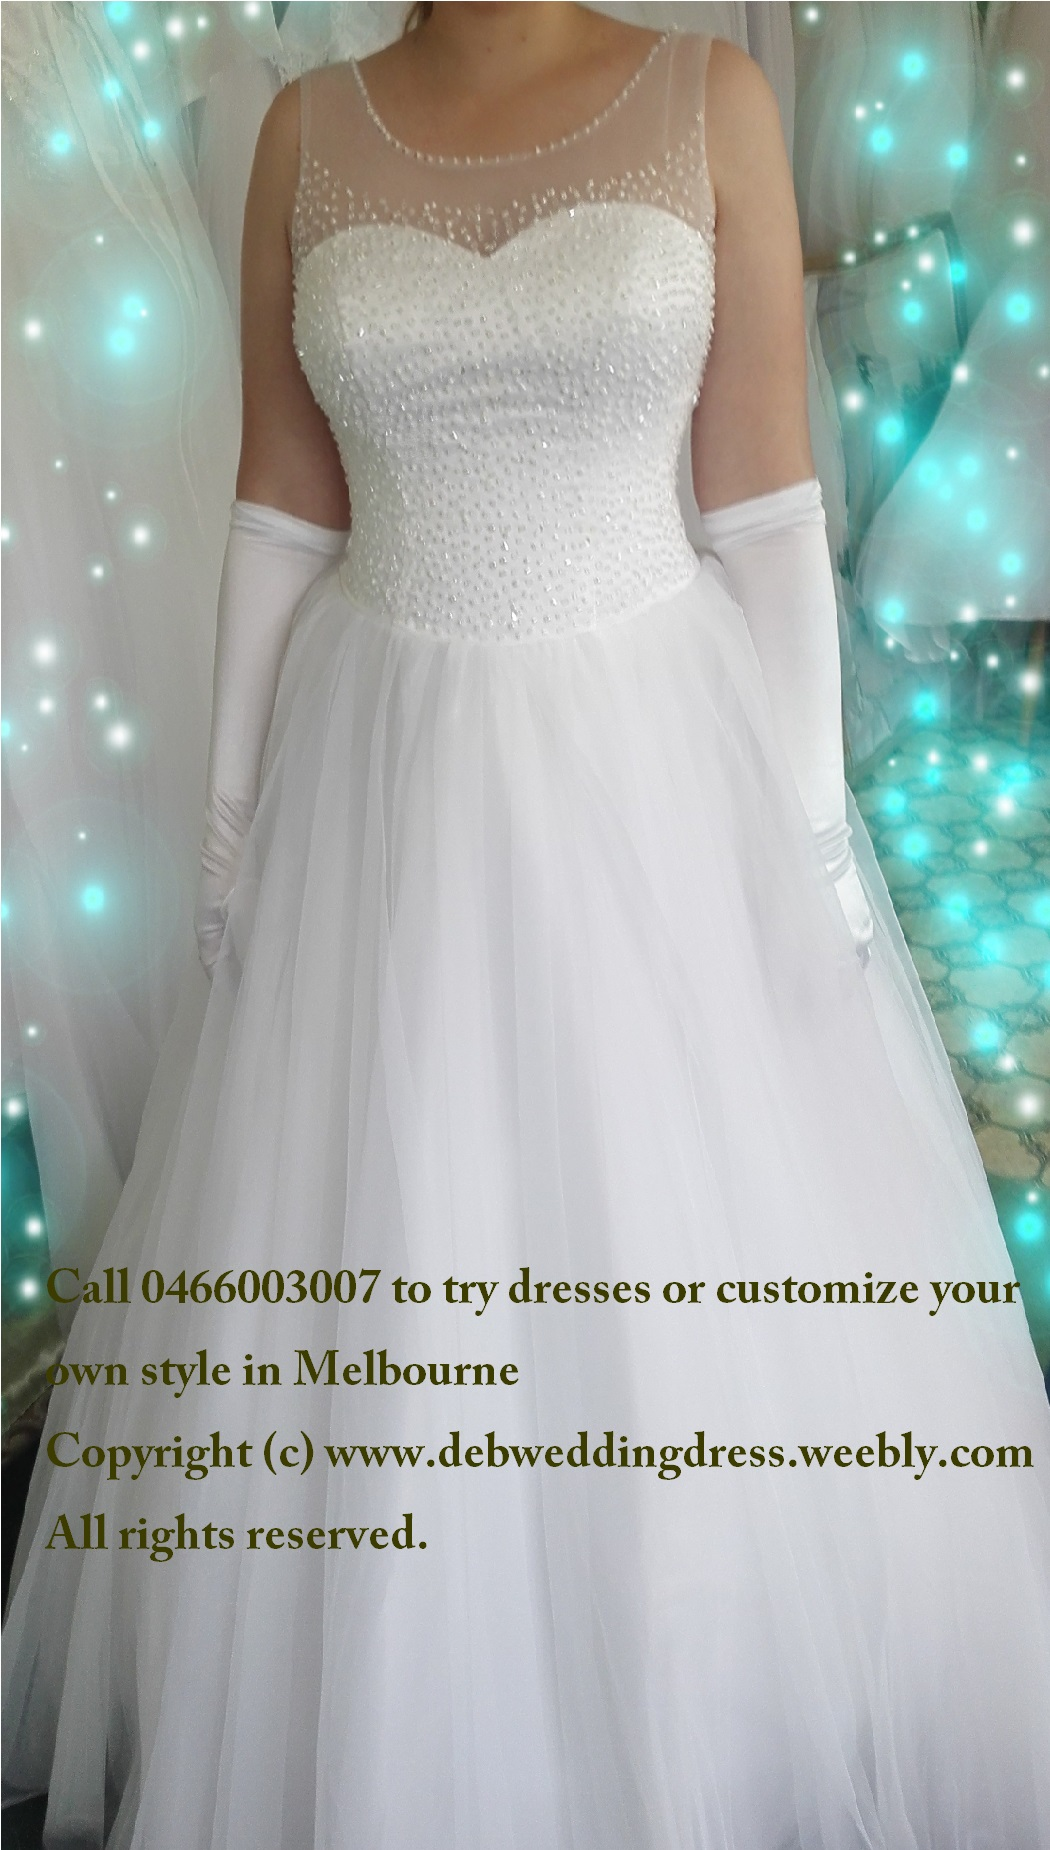 Ariel- Affordable deb dress/wedding gown( hire or buy online, in store)